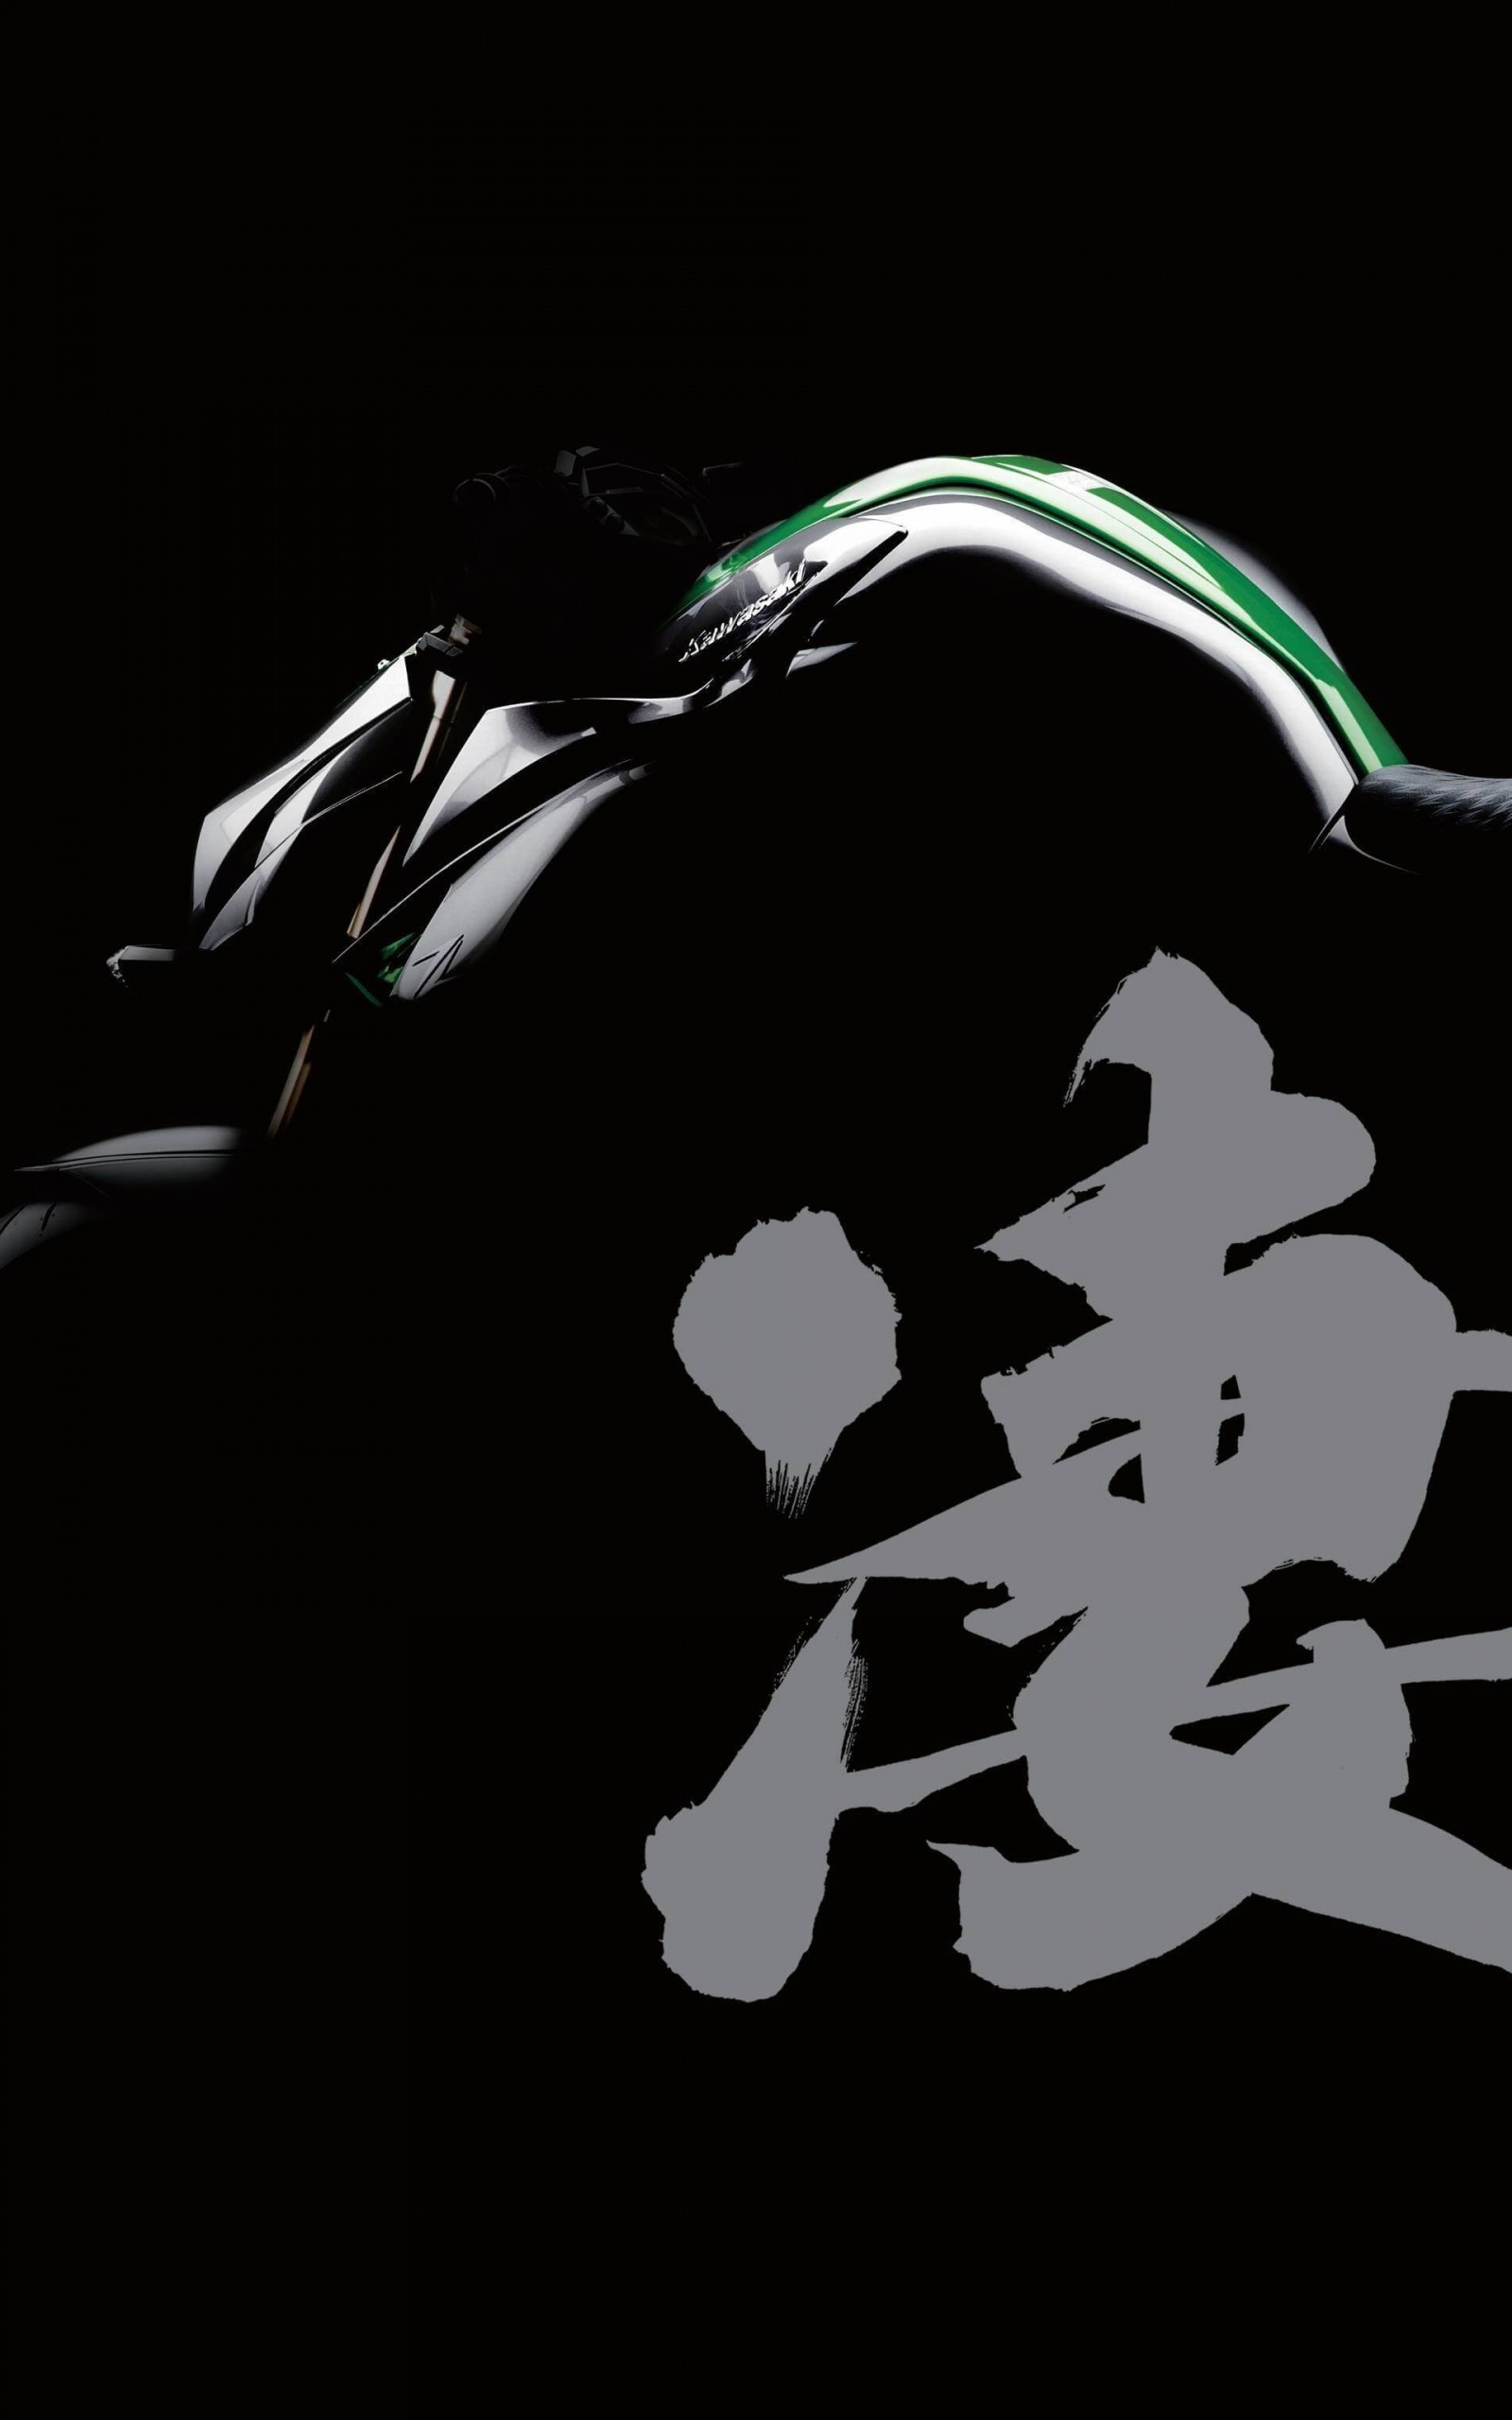 Kawasaki Z1000 Special Edition Sugomi Wallpaper for Amazon Kindle Fire HDX 8.9